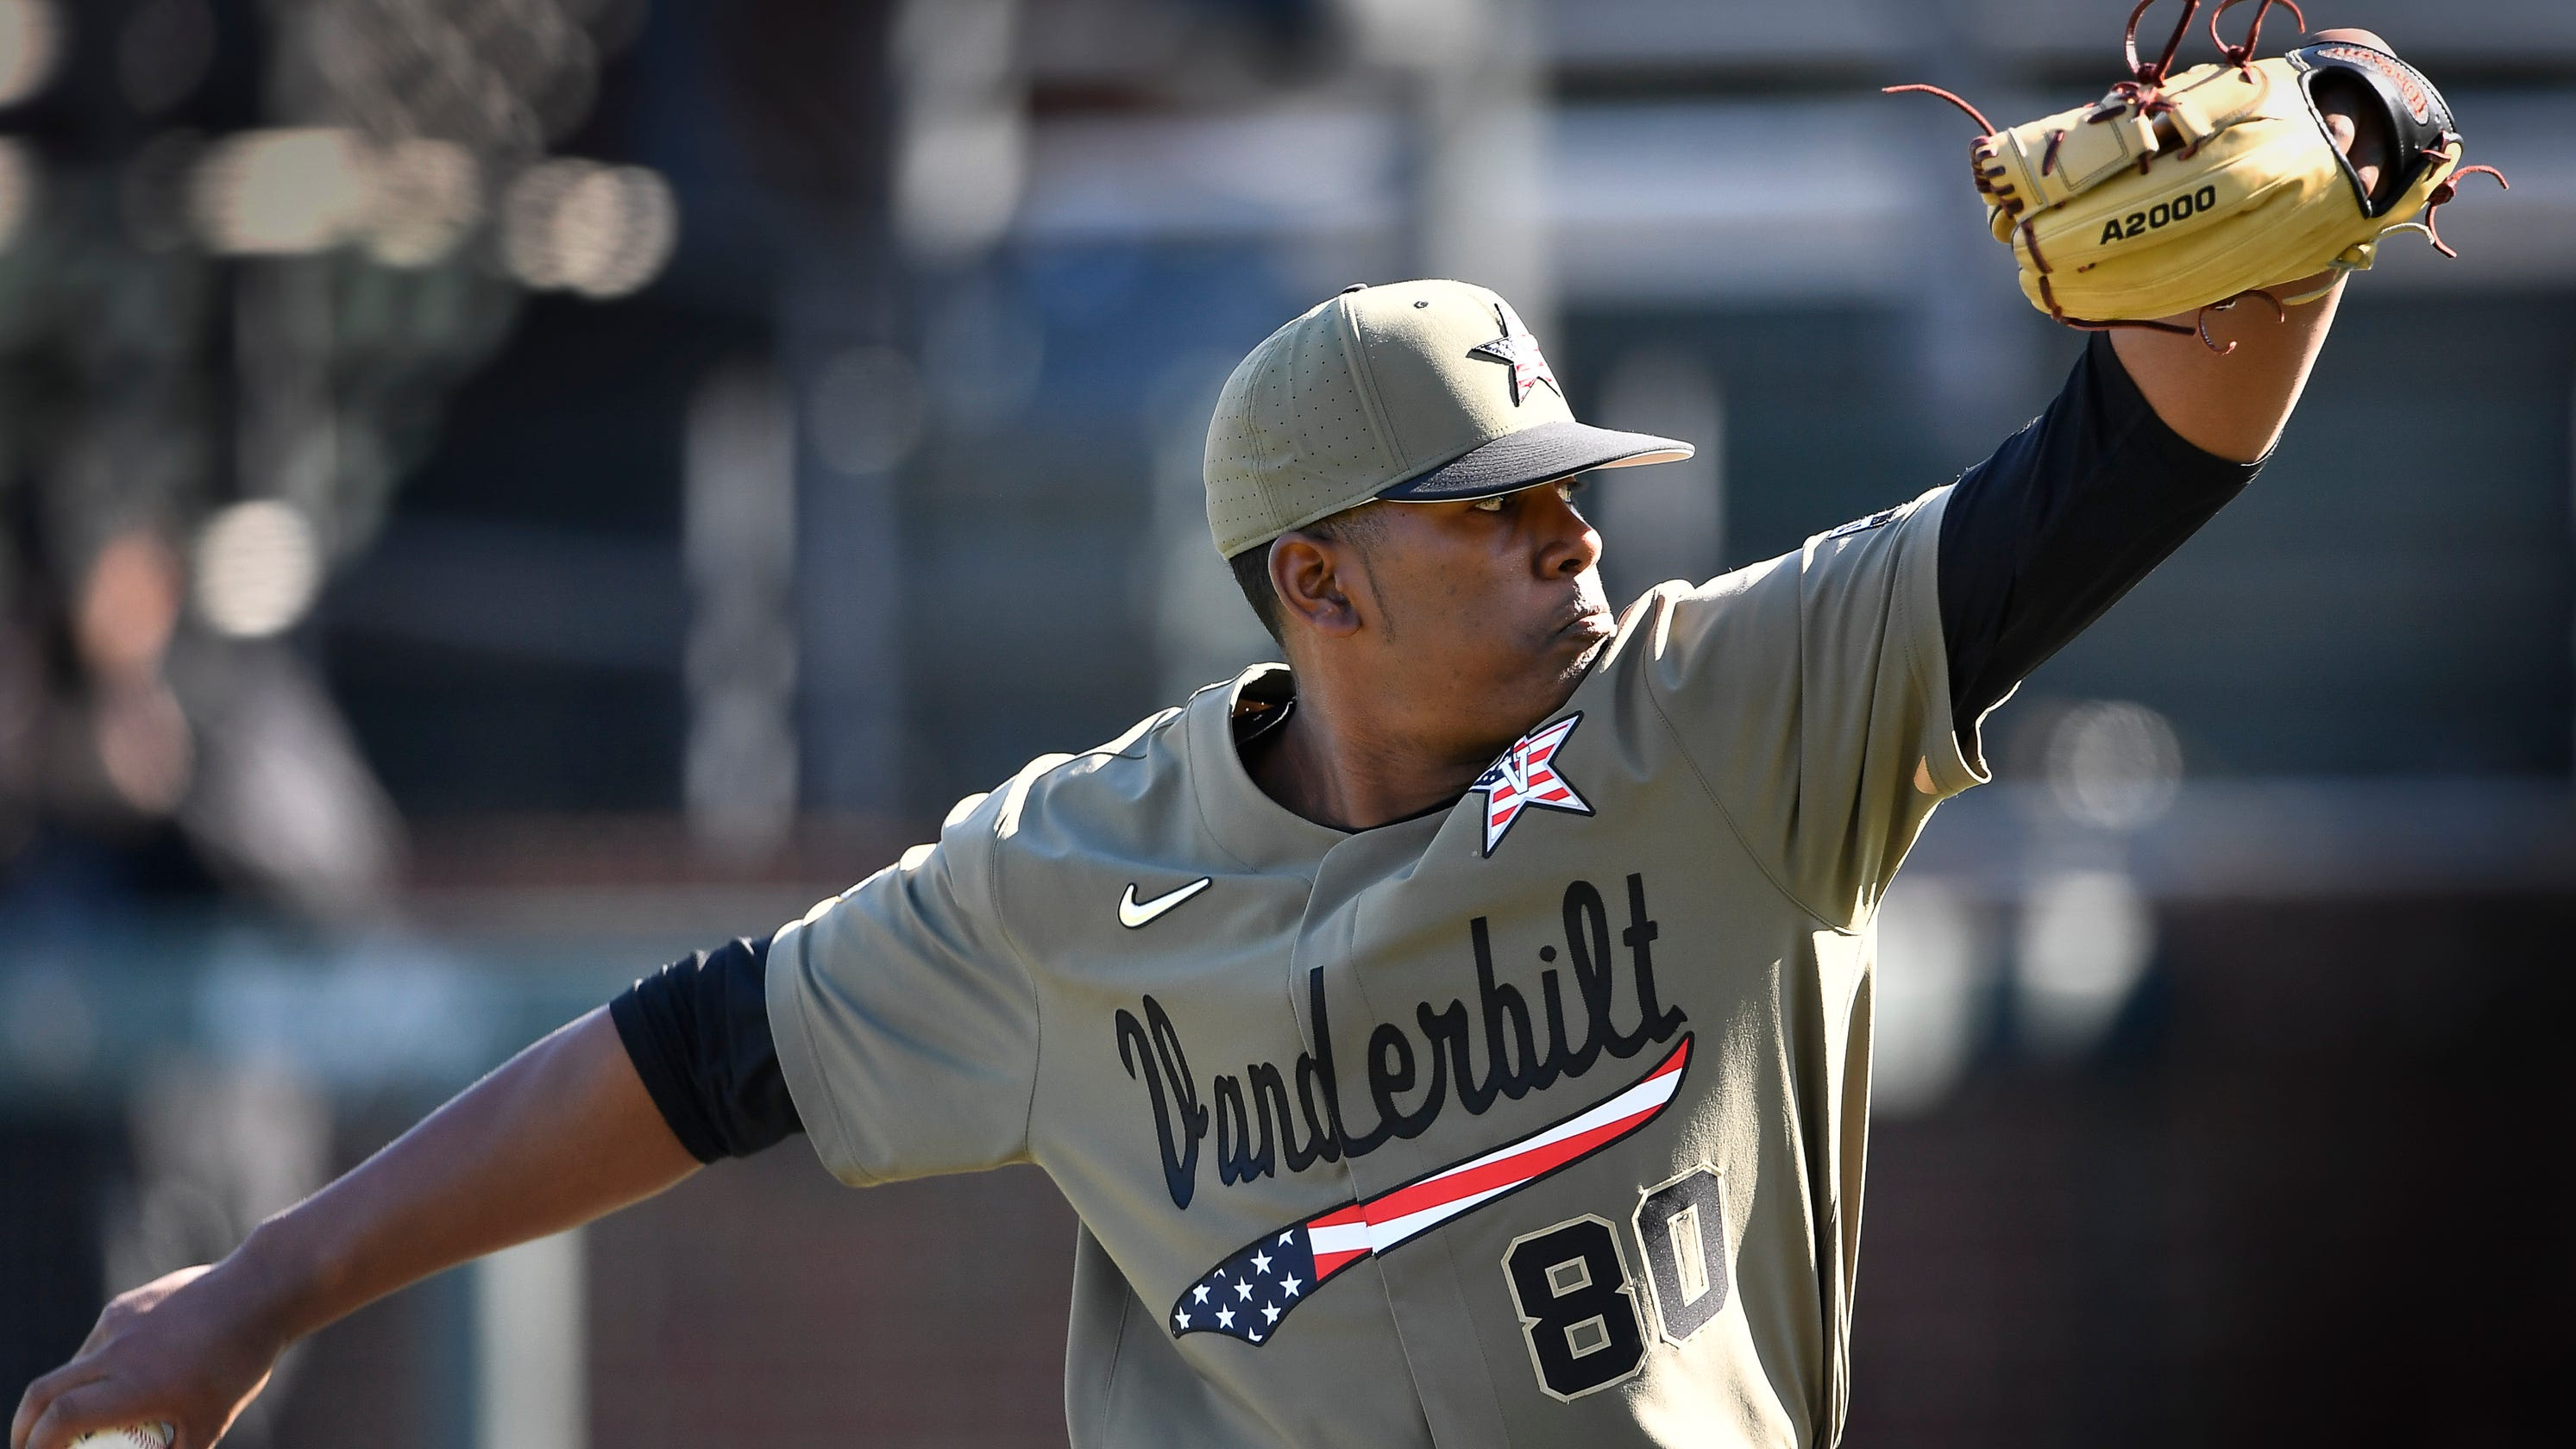 99fa47f4d4a7c Why Vanderbilt baseball wears patriotic uniforms